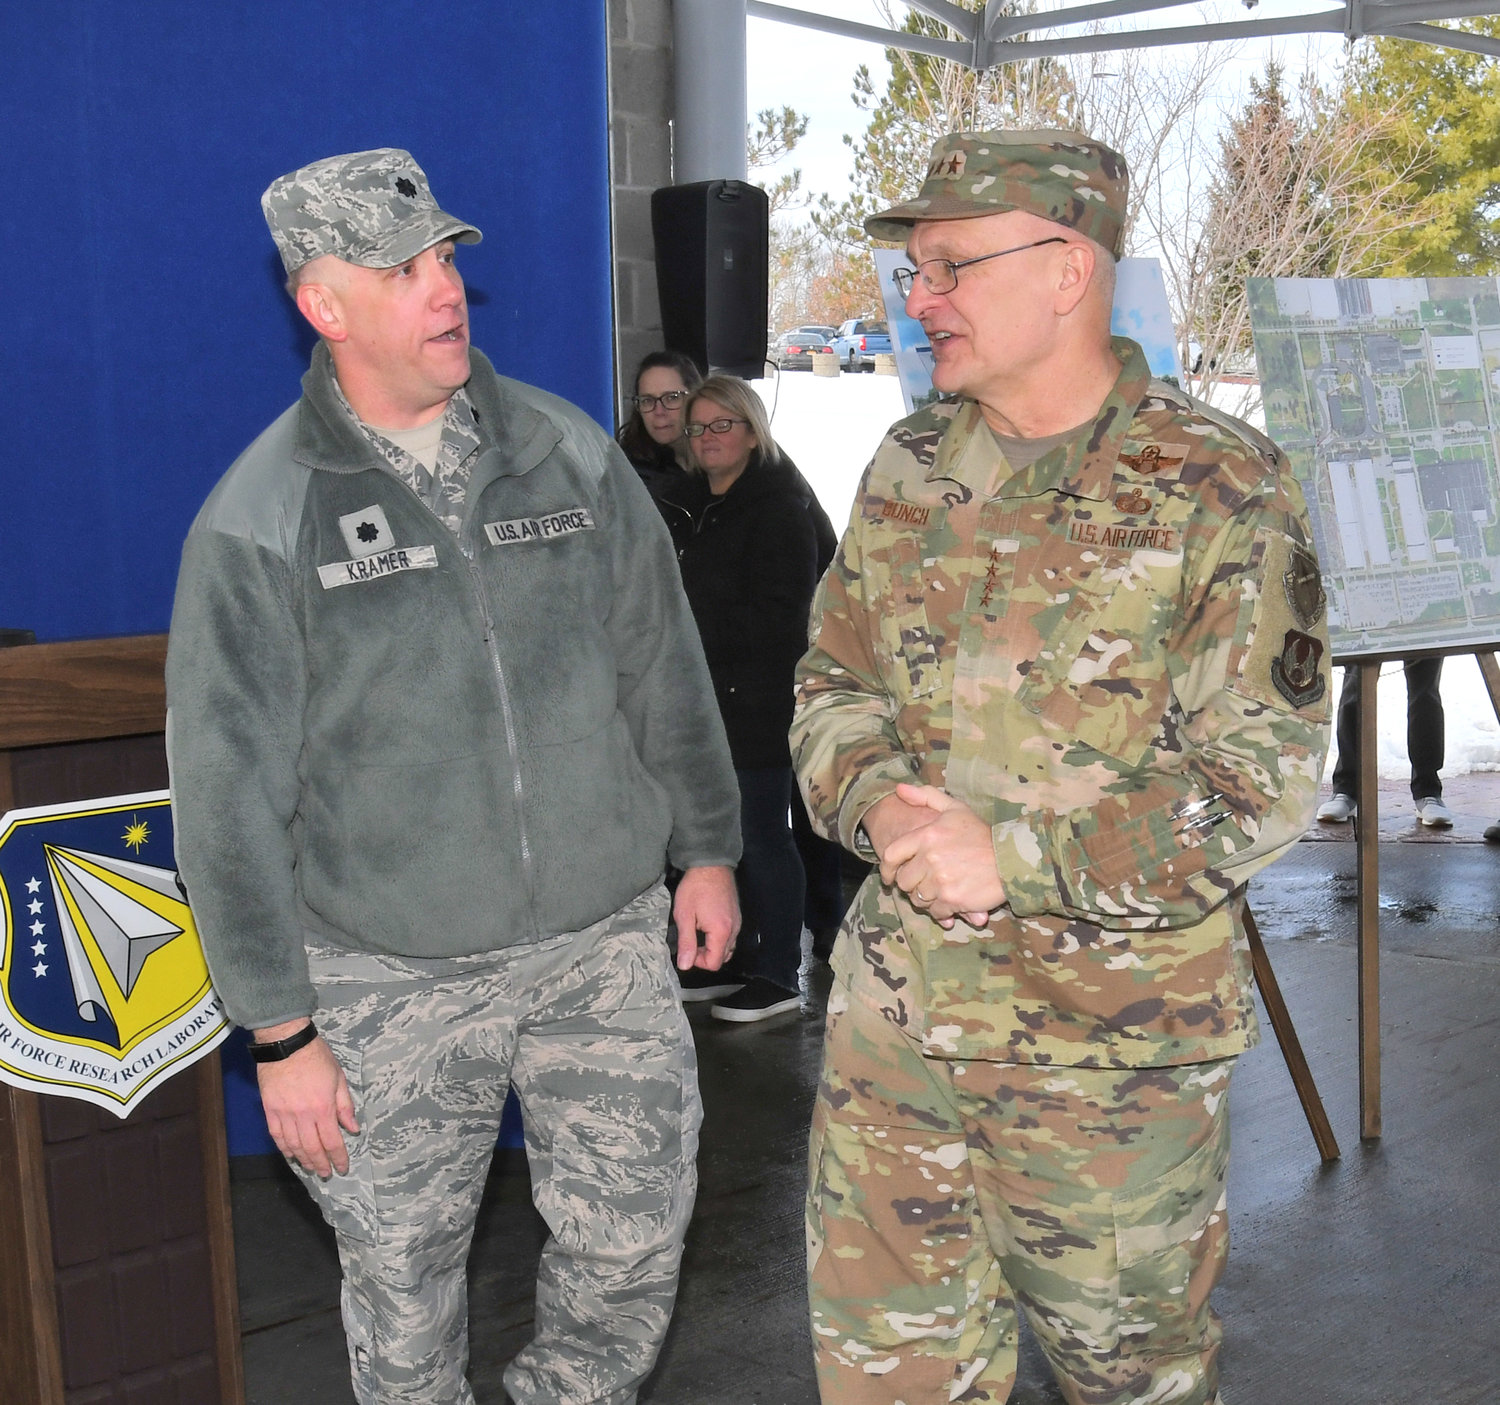 OFFICERS' DISCUSSION — Lt. Col. Thomas Kramer, at left, deputy military commander for Detachment 4 at the Air Force's Rome Lab, talks with Air Force four-star Gen. Arnold W. Bunch Jr. on Wednesday at a ceremony marking the start of construction for a new $13.15 million perimeter security system at the lab. Bunch is commander of Air Force Materiel Command.